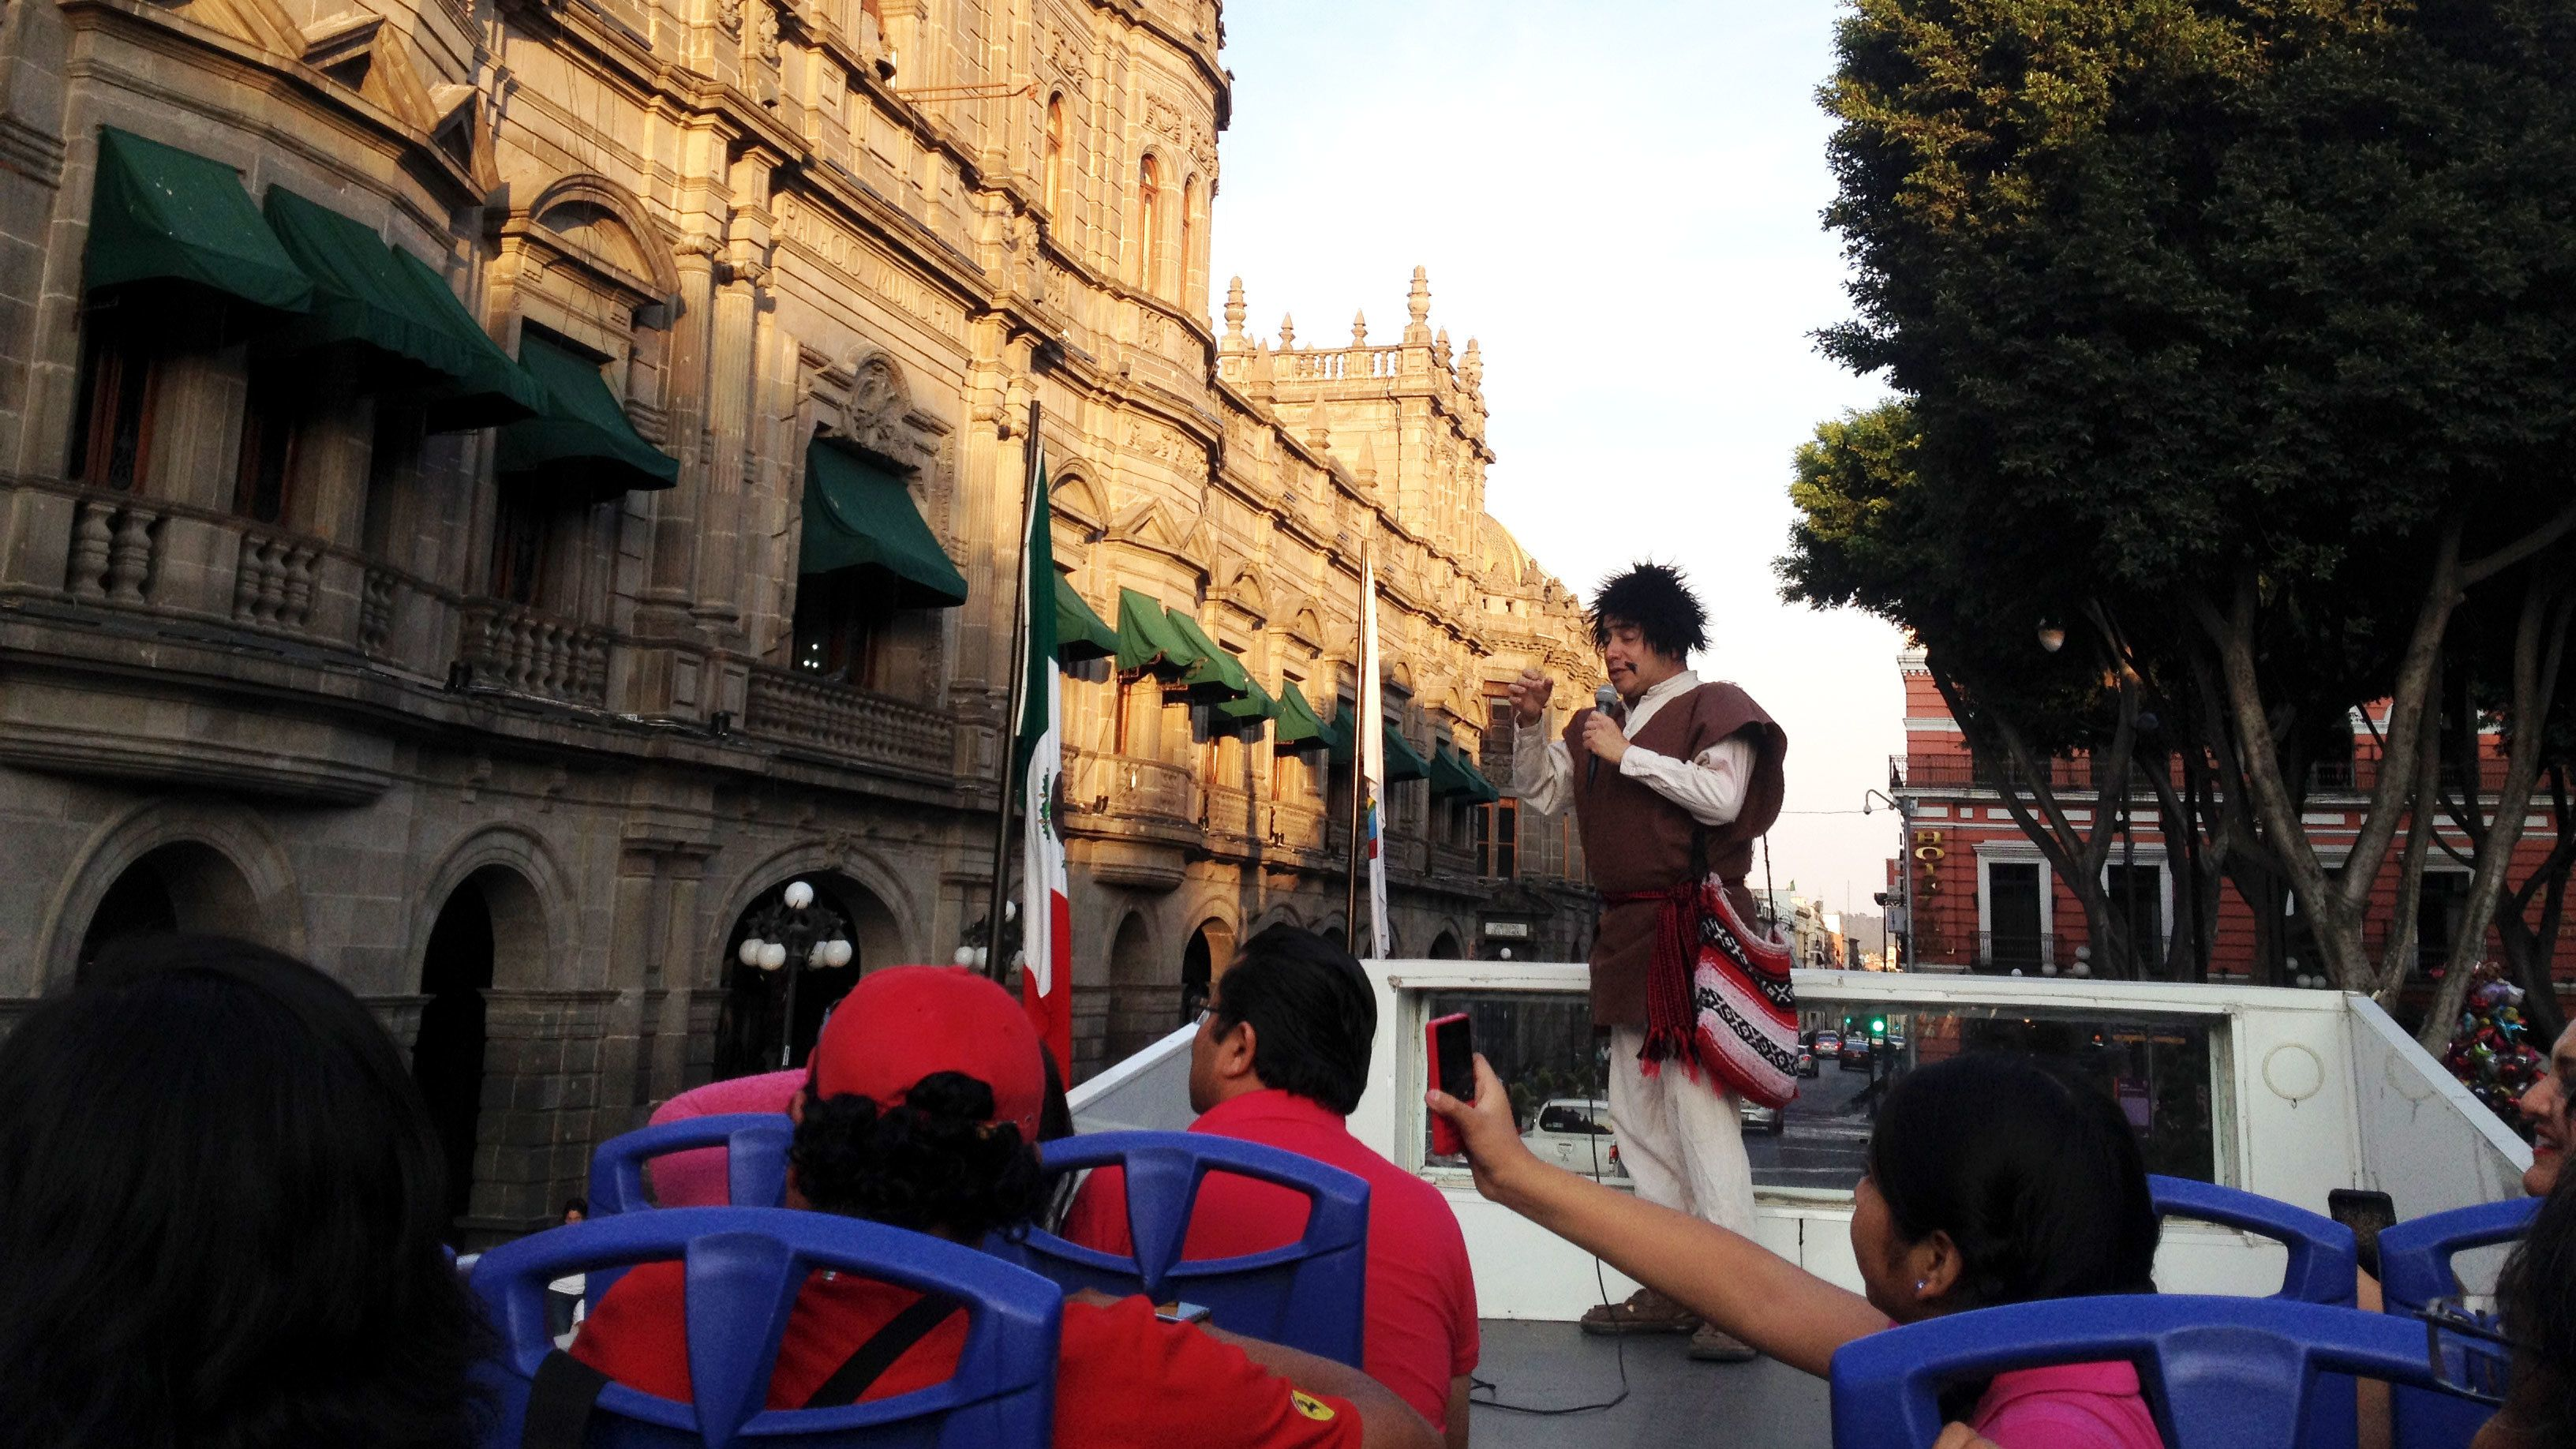 Tour guide talking to tourists on bus in Puebla